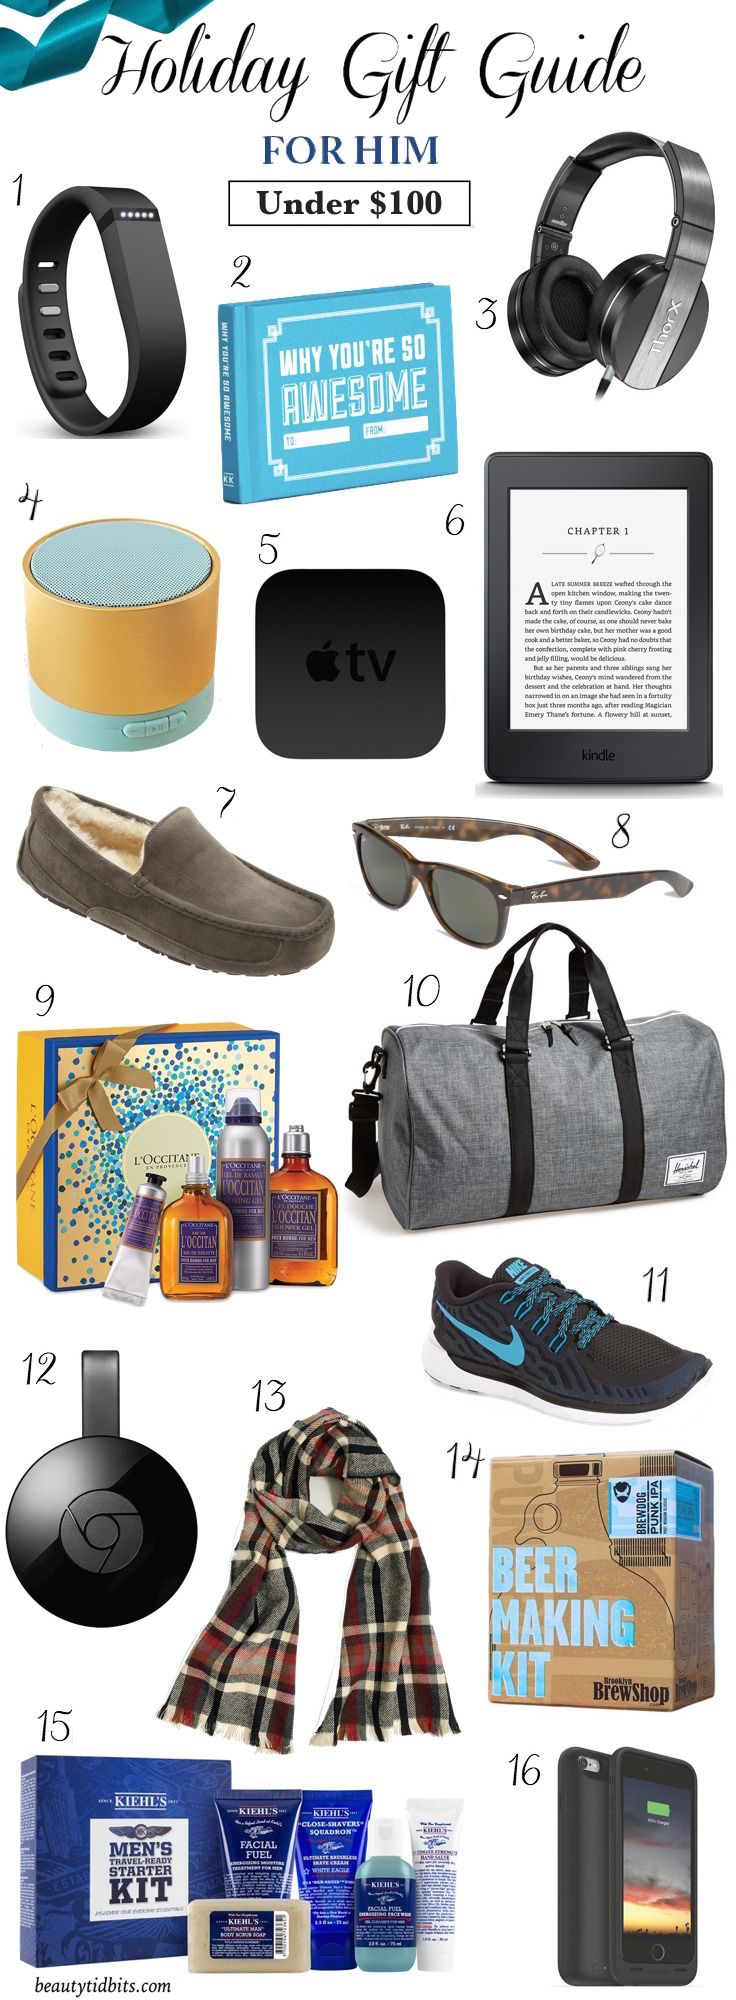 gifts for men christmas gift ideas christmas presents gift ideas for men